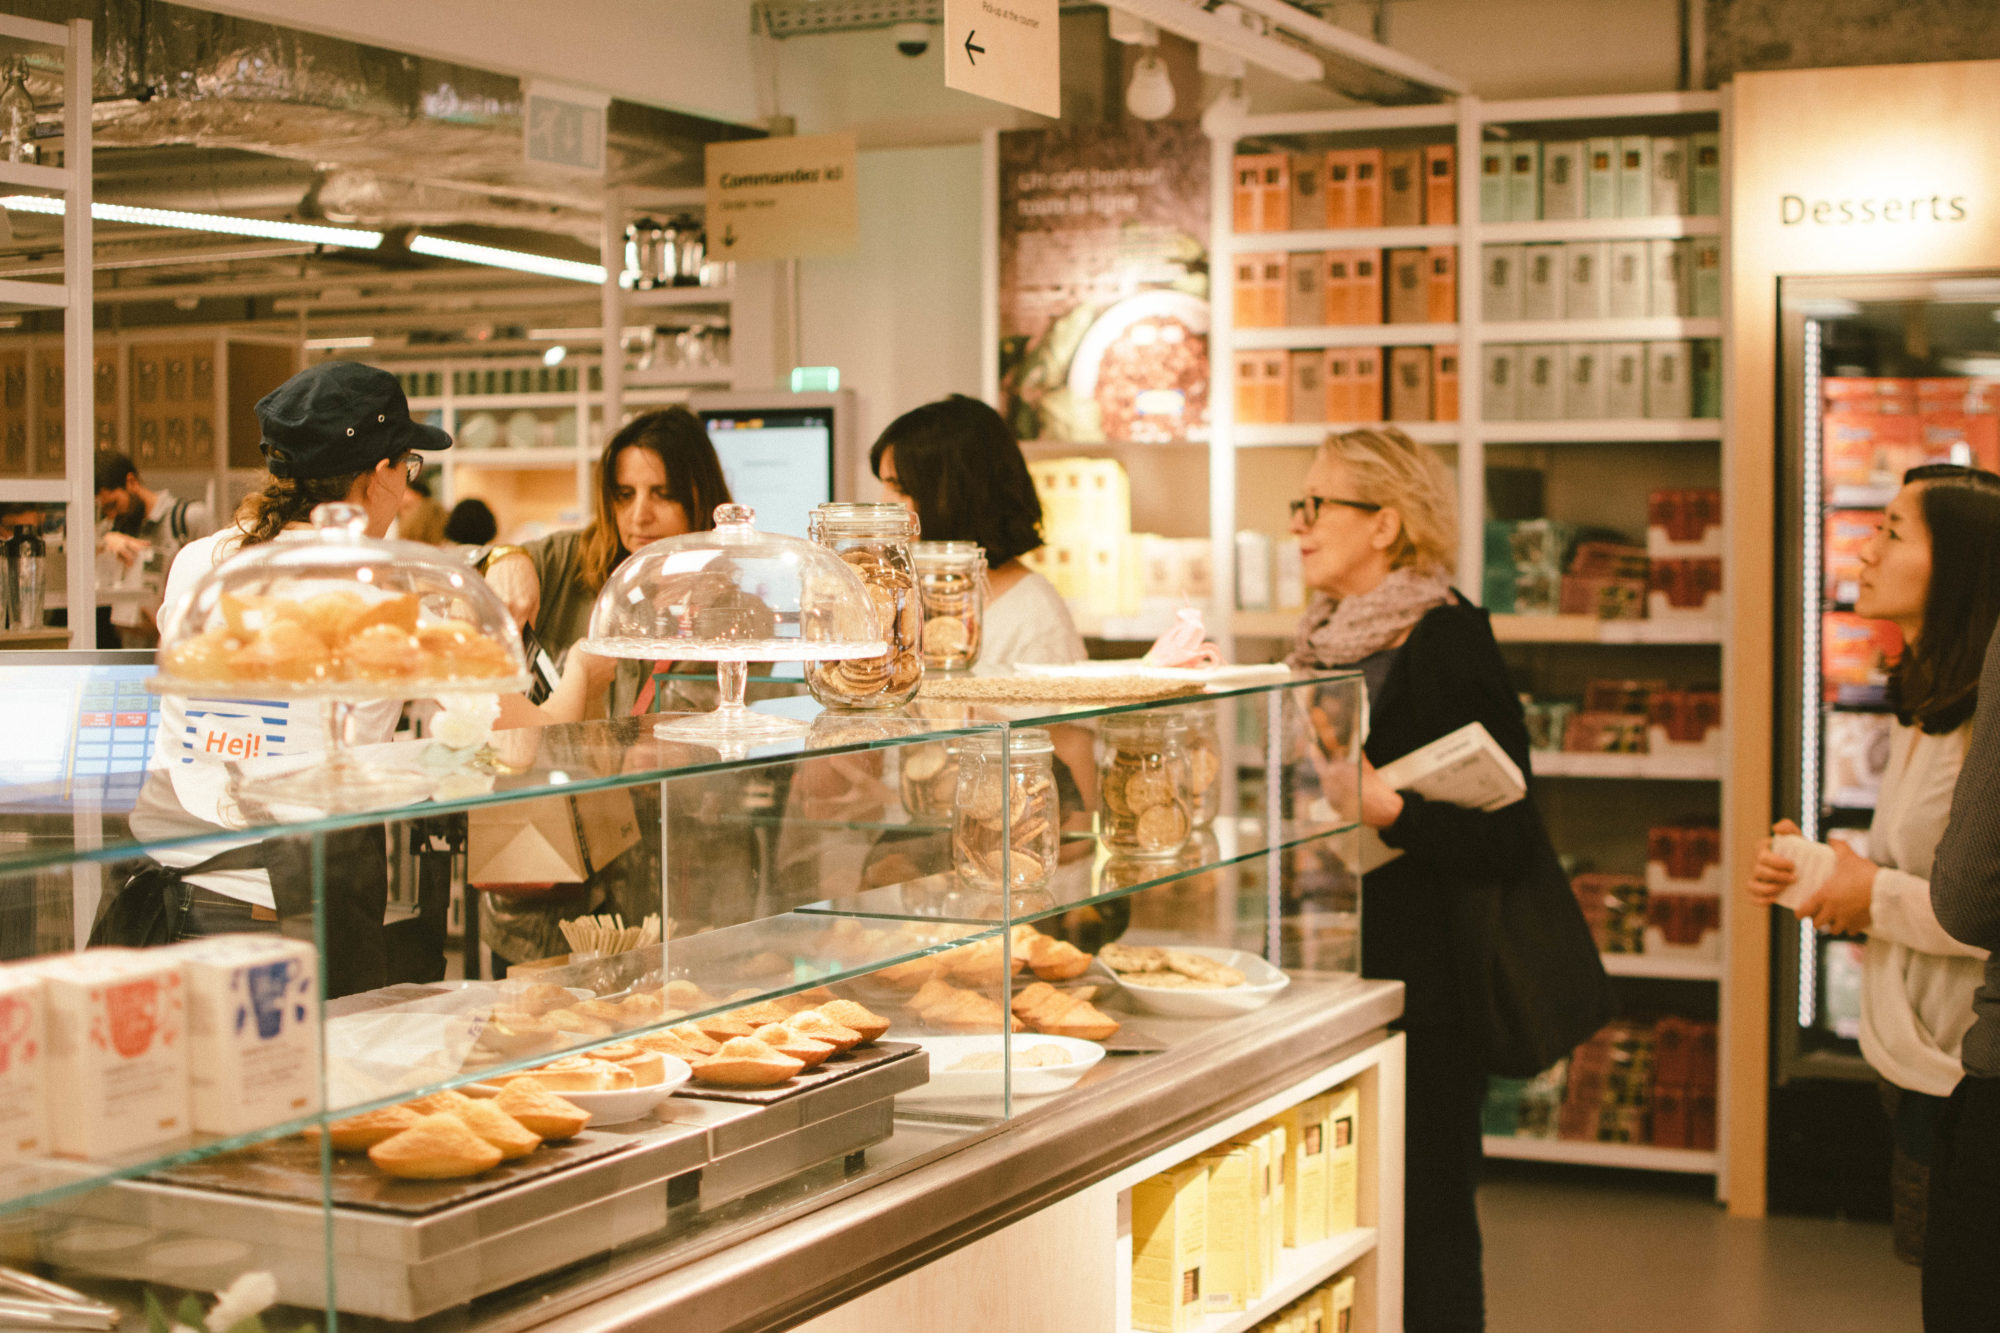 Customers waiting in line at the boulangerie counter at IKEA Paris La Madeleine